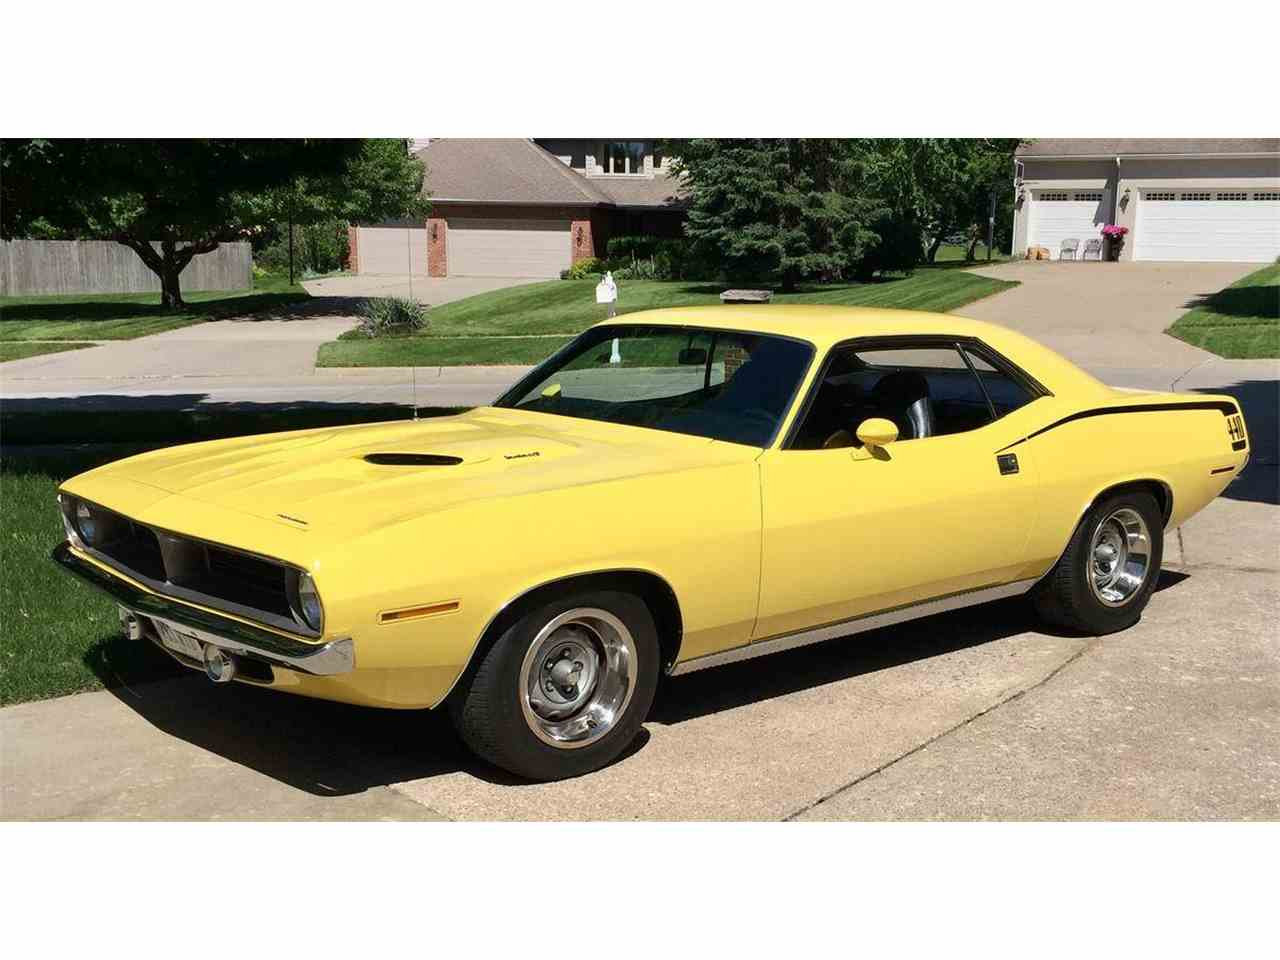 Classic Plymouth Barracuda For Sale On Classiccars Com Available